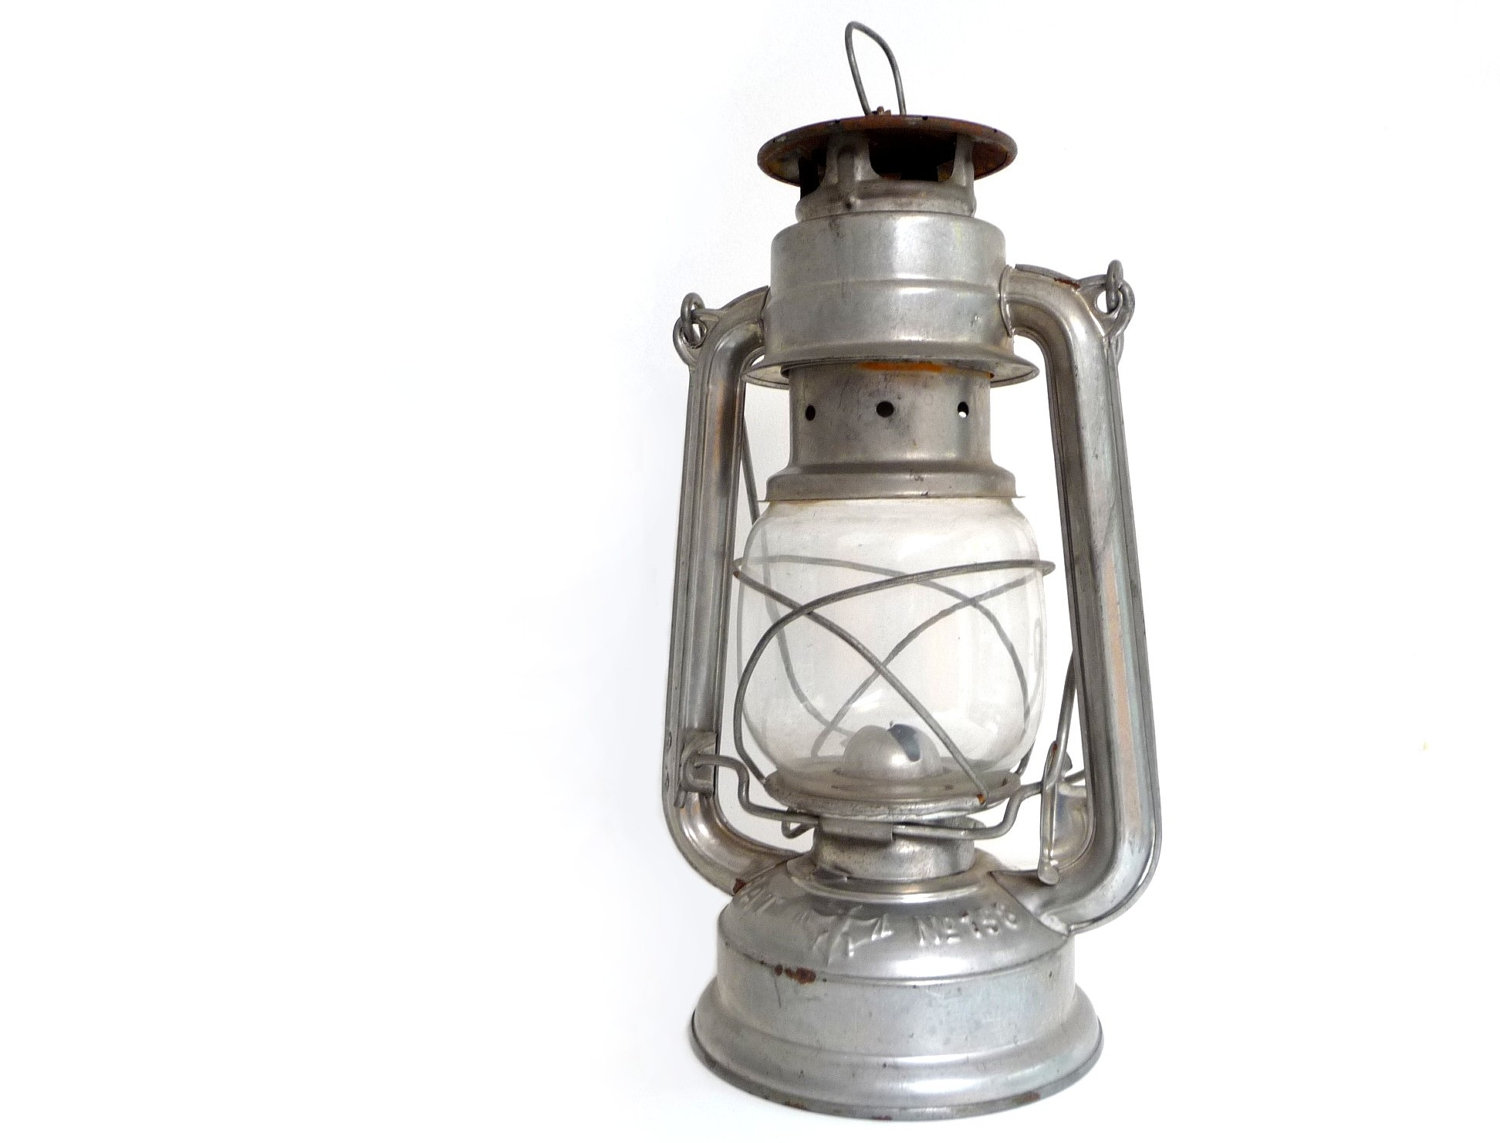 Modern Kerosene Lamp Antique Kerosene Lamps 10 Fine Sources Of Light As An